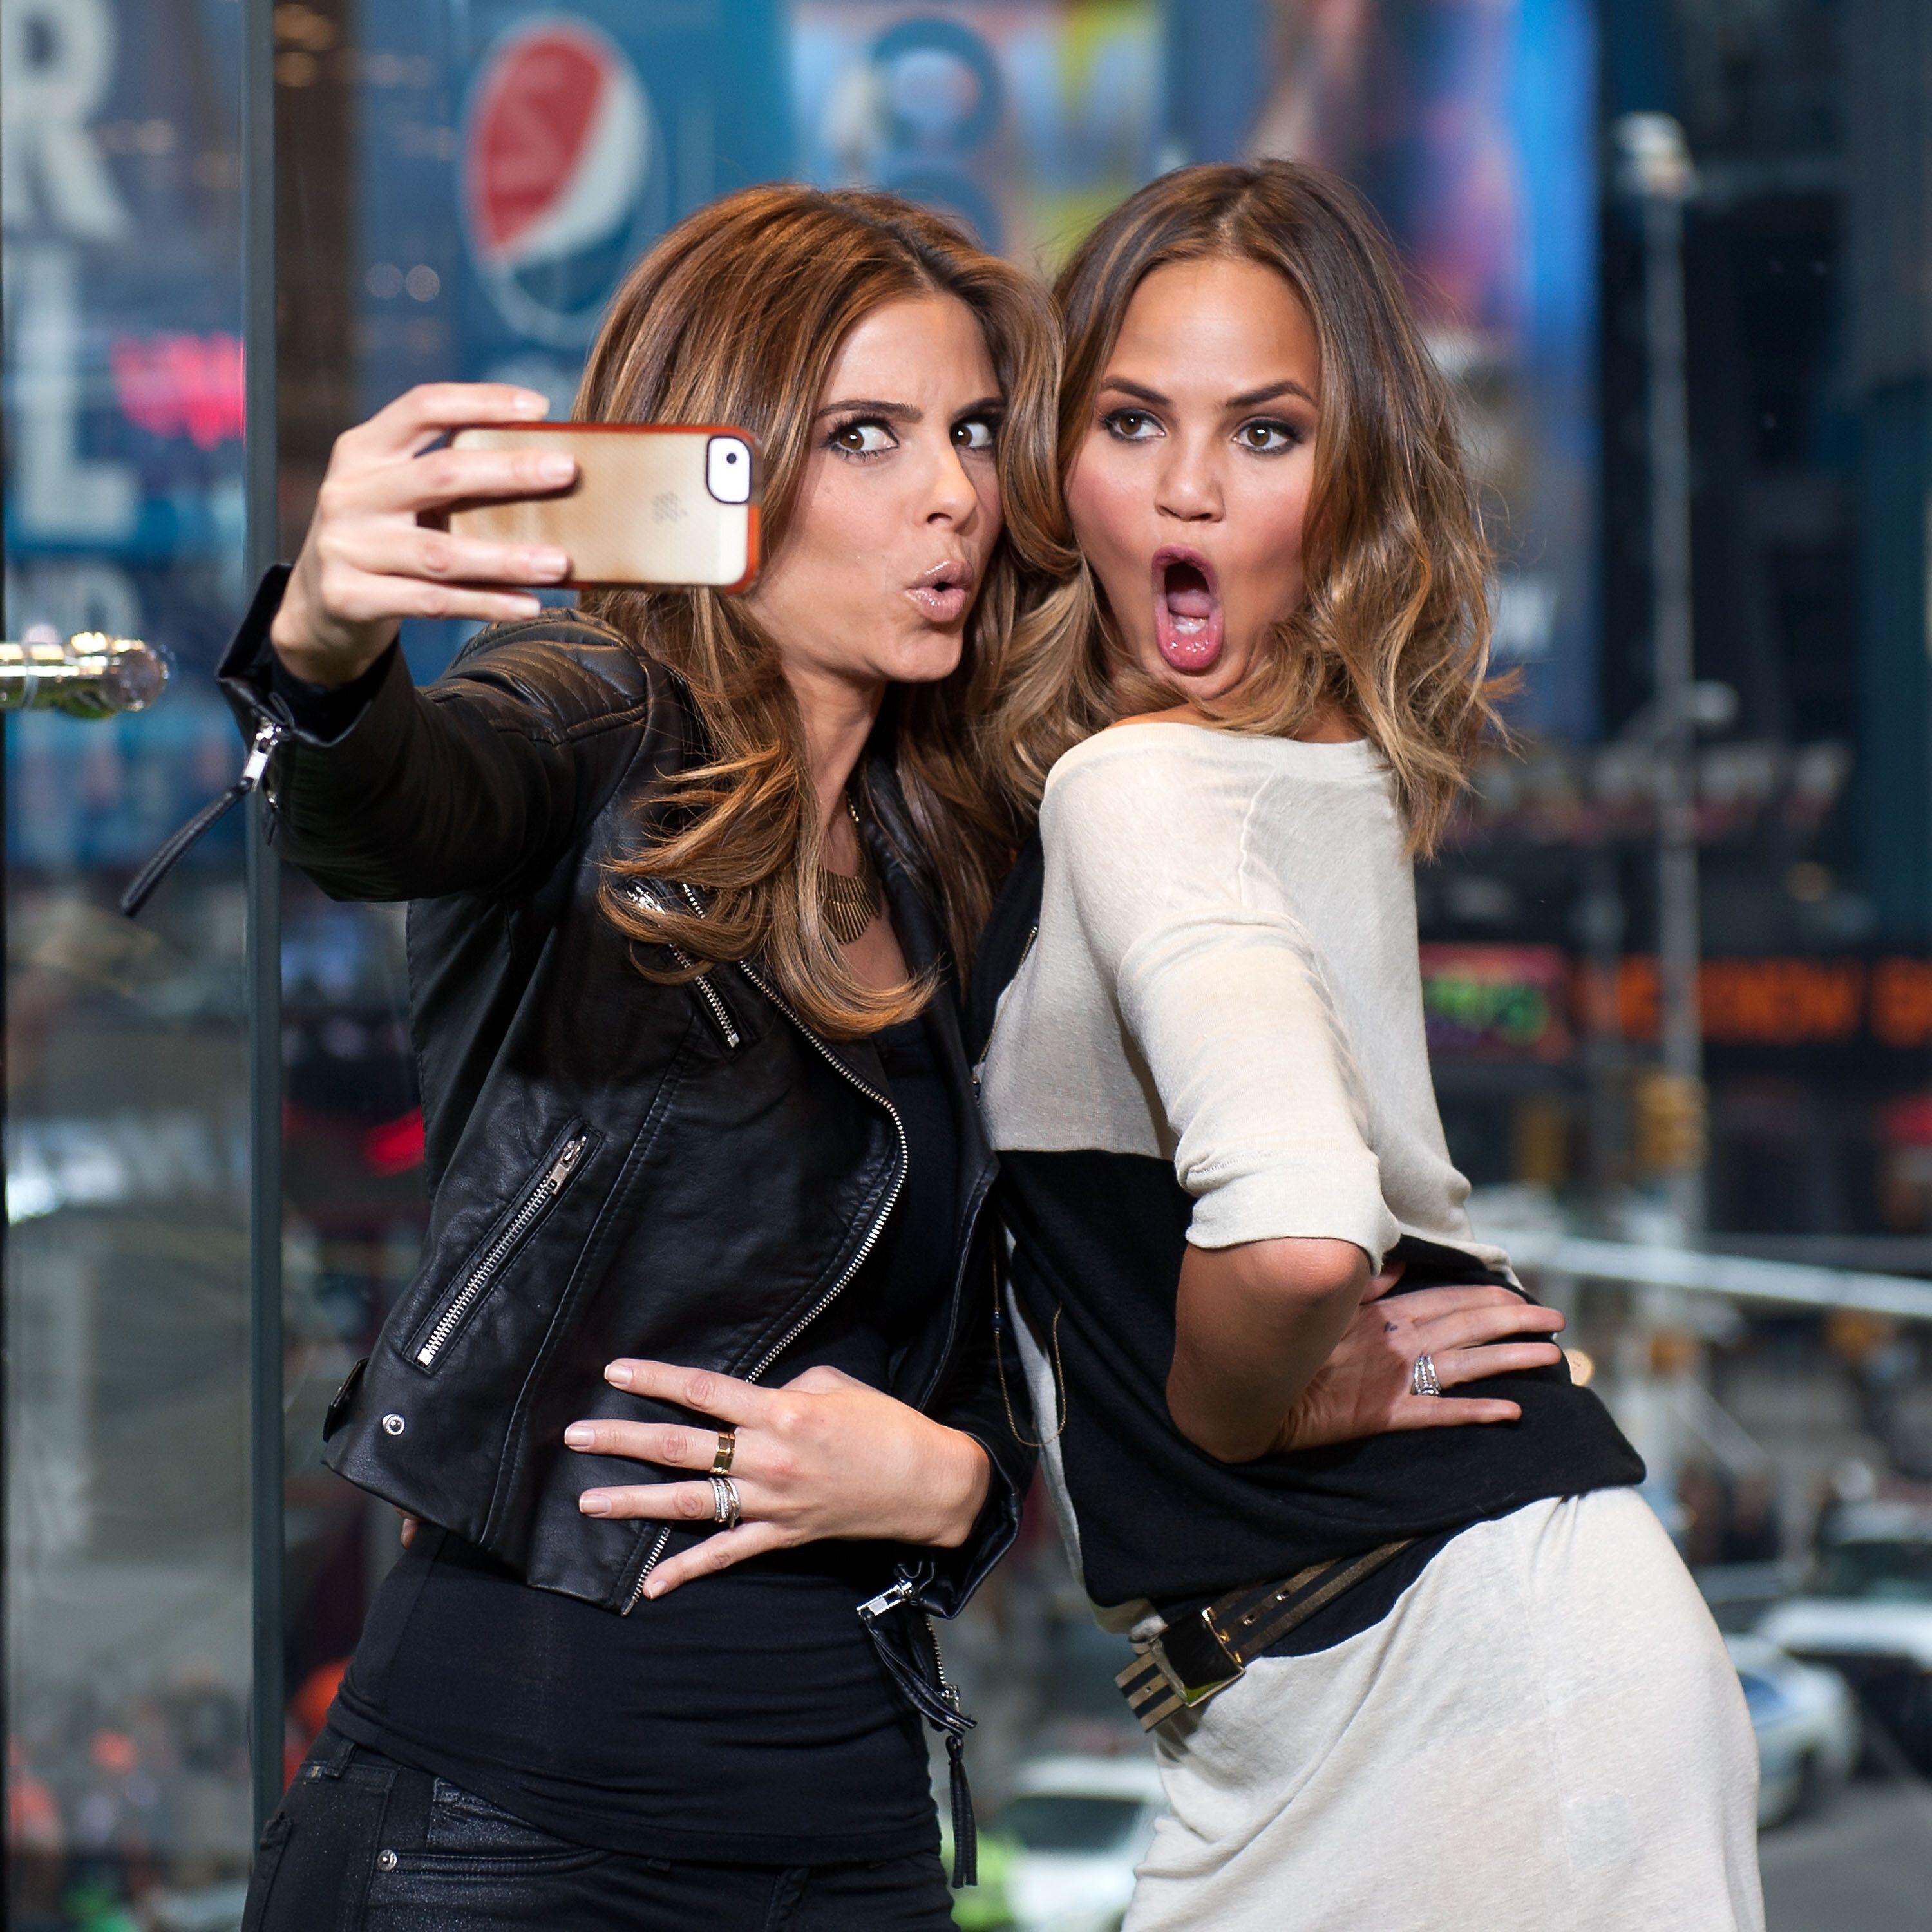 """NEW YORK, NY - JANUARY 31:  (L-R) Maria Menounos (L) and Chrissie Teigen visit """"Extra"""" in Times Square on January 31, 2014 in New York City.  (Photo by D Dipasupil/Getty Images for Extra)"""